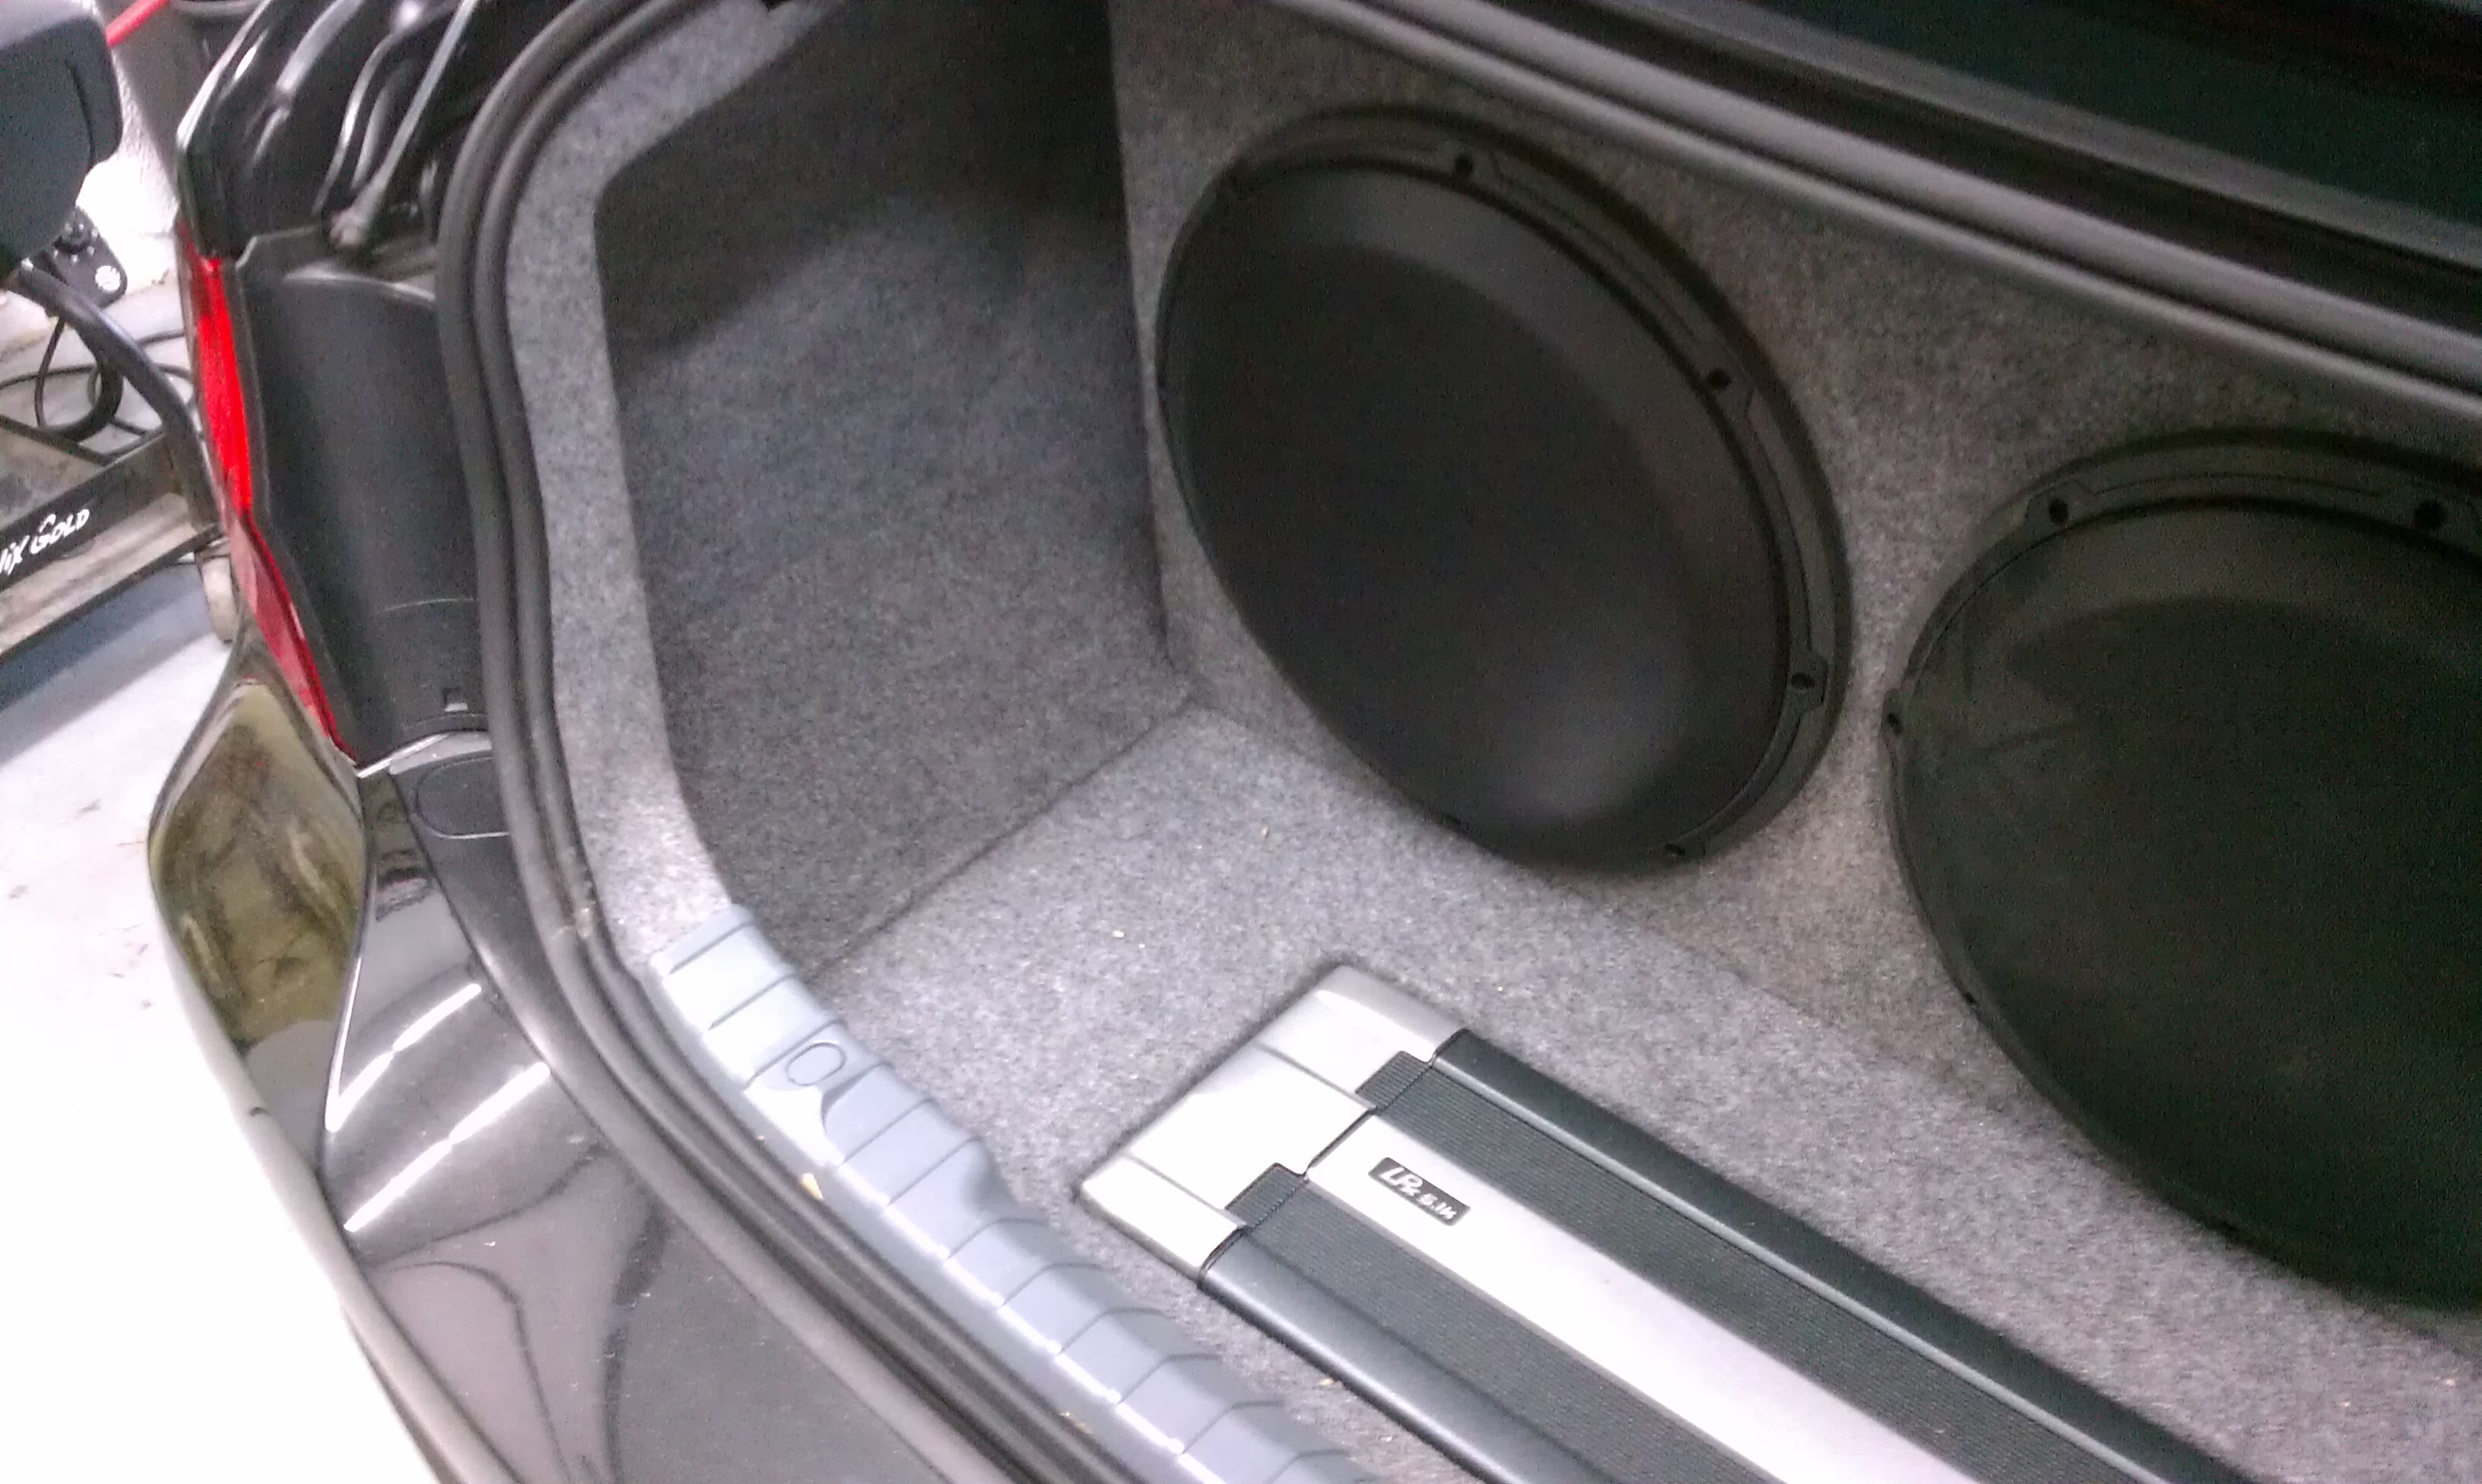 Car Audio Sales And Installation High End Custom Systems By The Pros How To A Stereo Bmw 3 Series Sub Amp Installed In Trunk